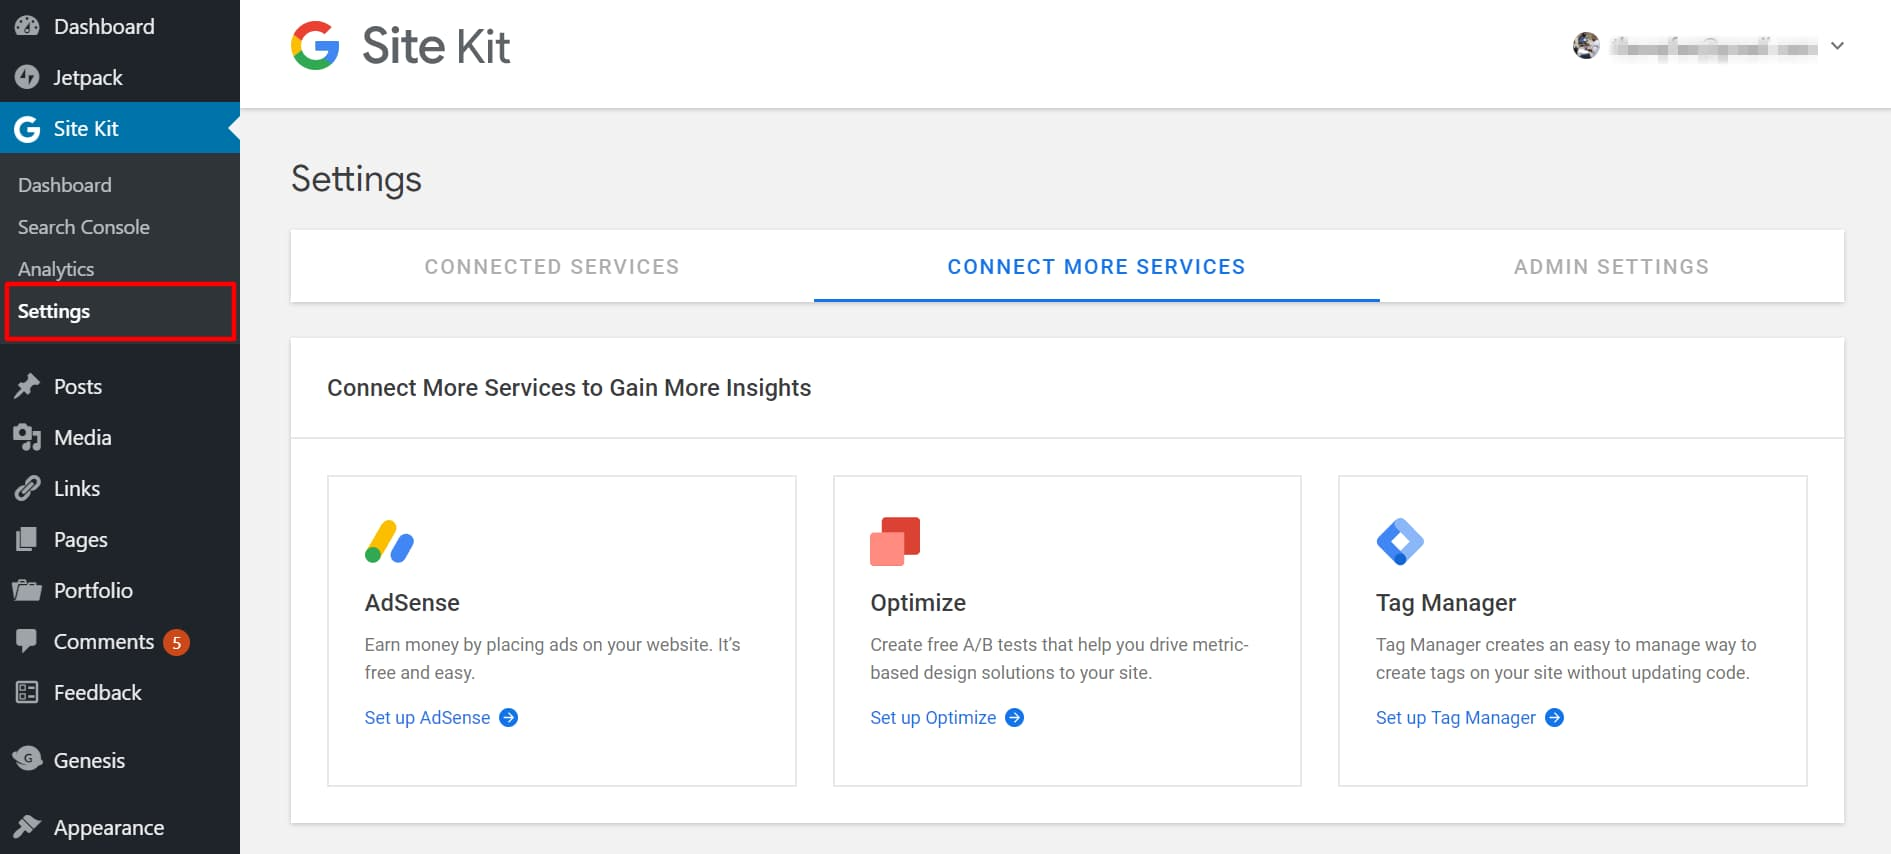 google site kit settings page